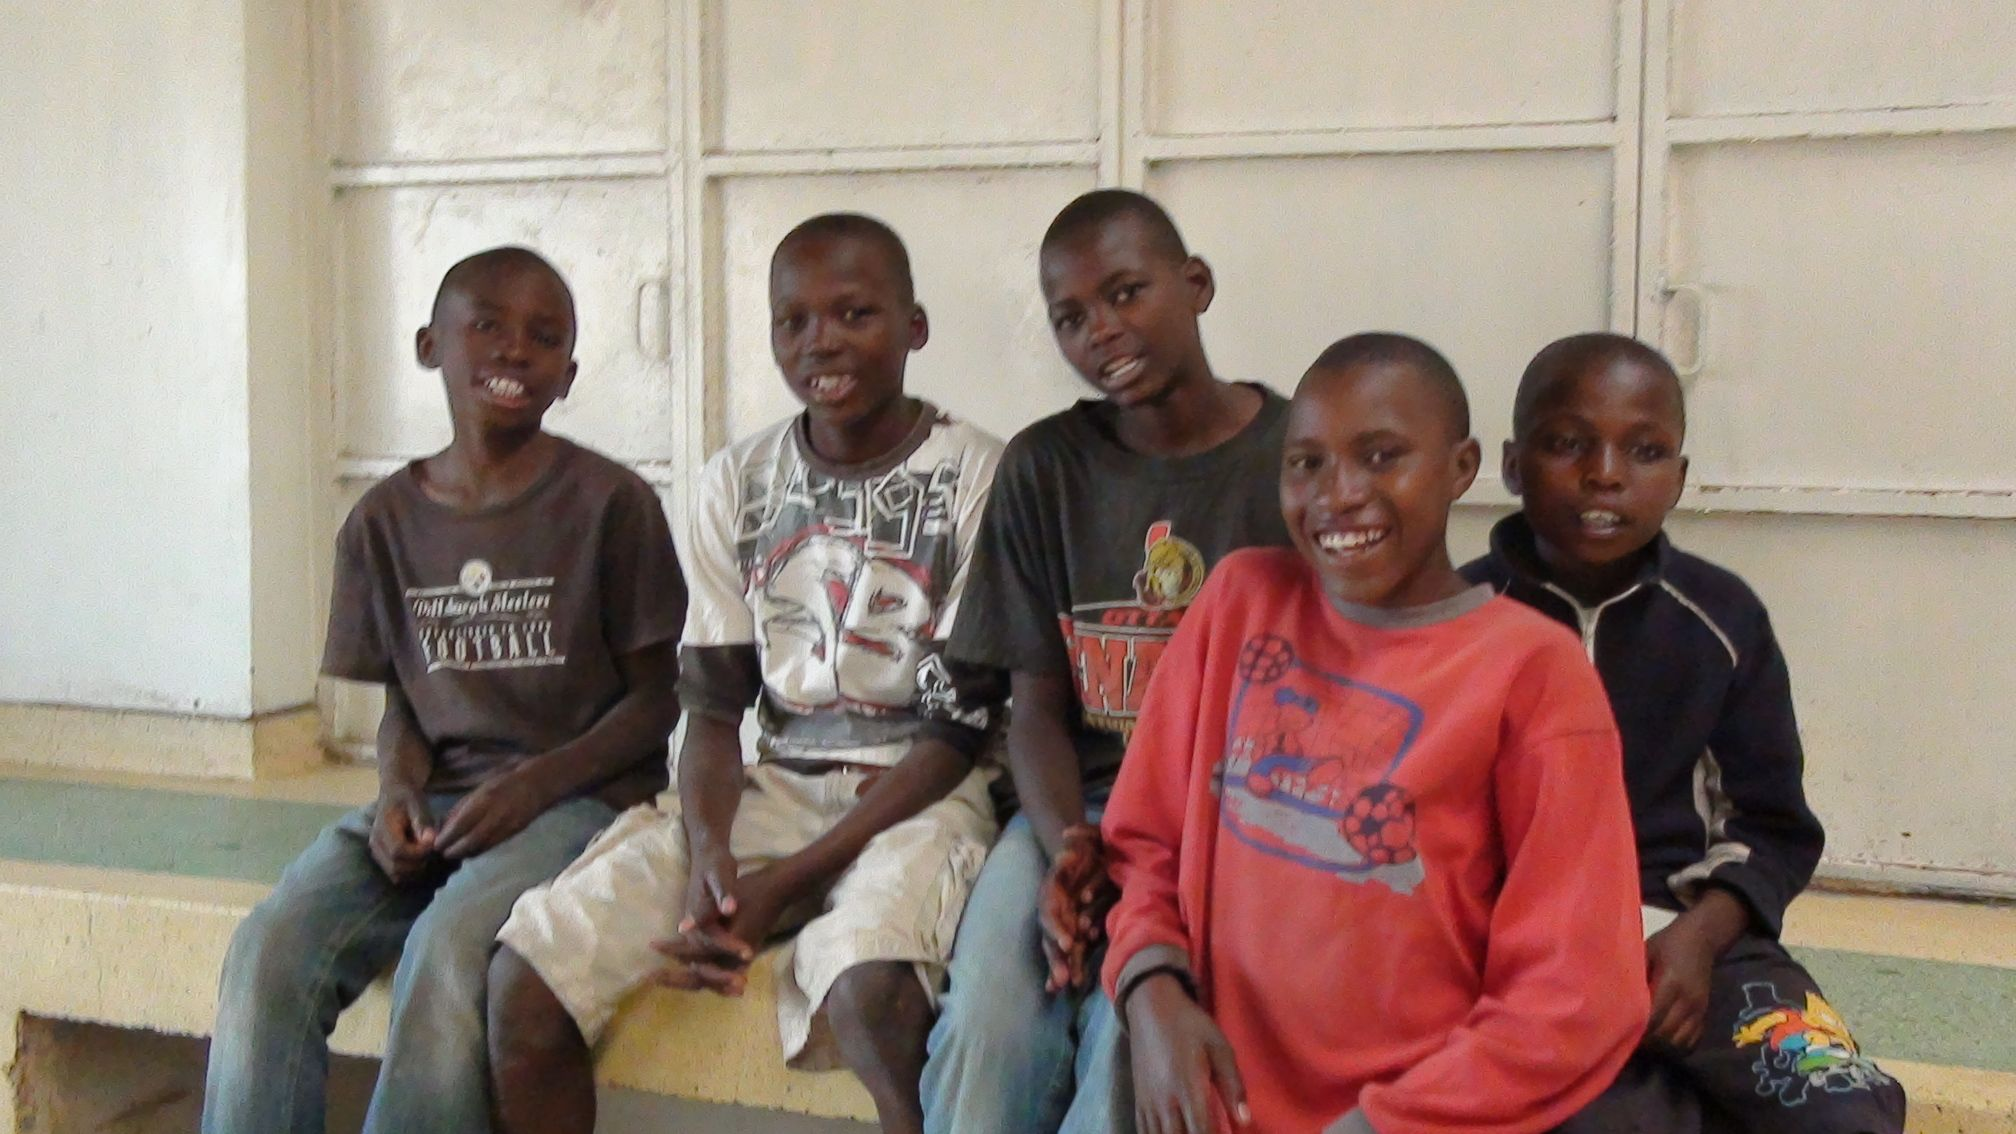 some boys at JWHS, a boys' home in Kenya, project of Expanding Opportunities. Support by shopping at Ainamoja.com and kangausa.com